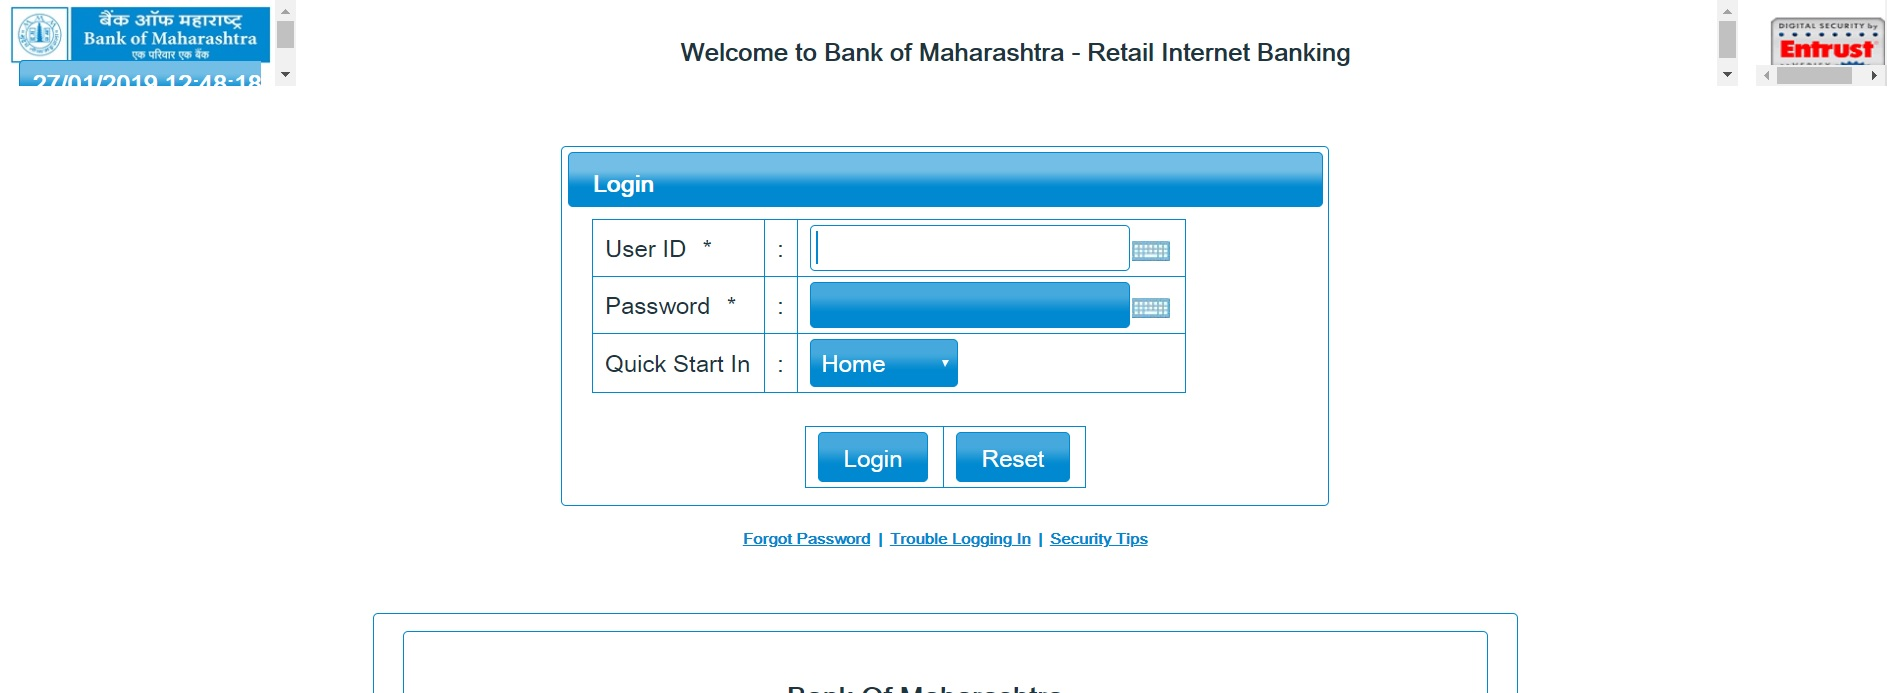 Bank of Maharashtra Online Banking Login